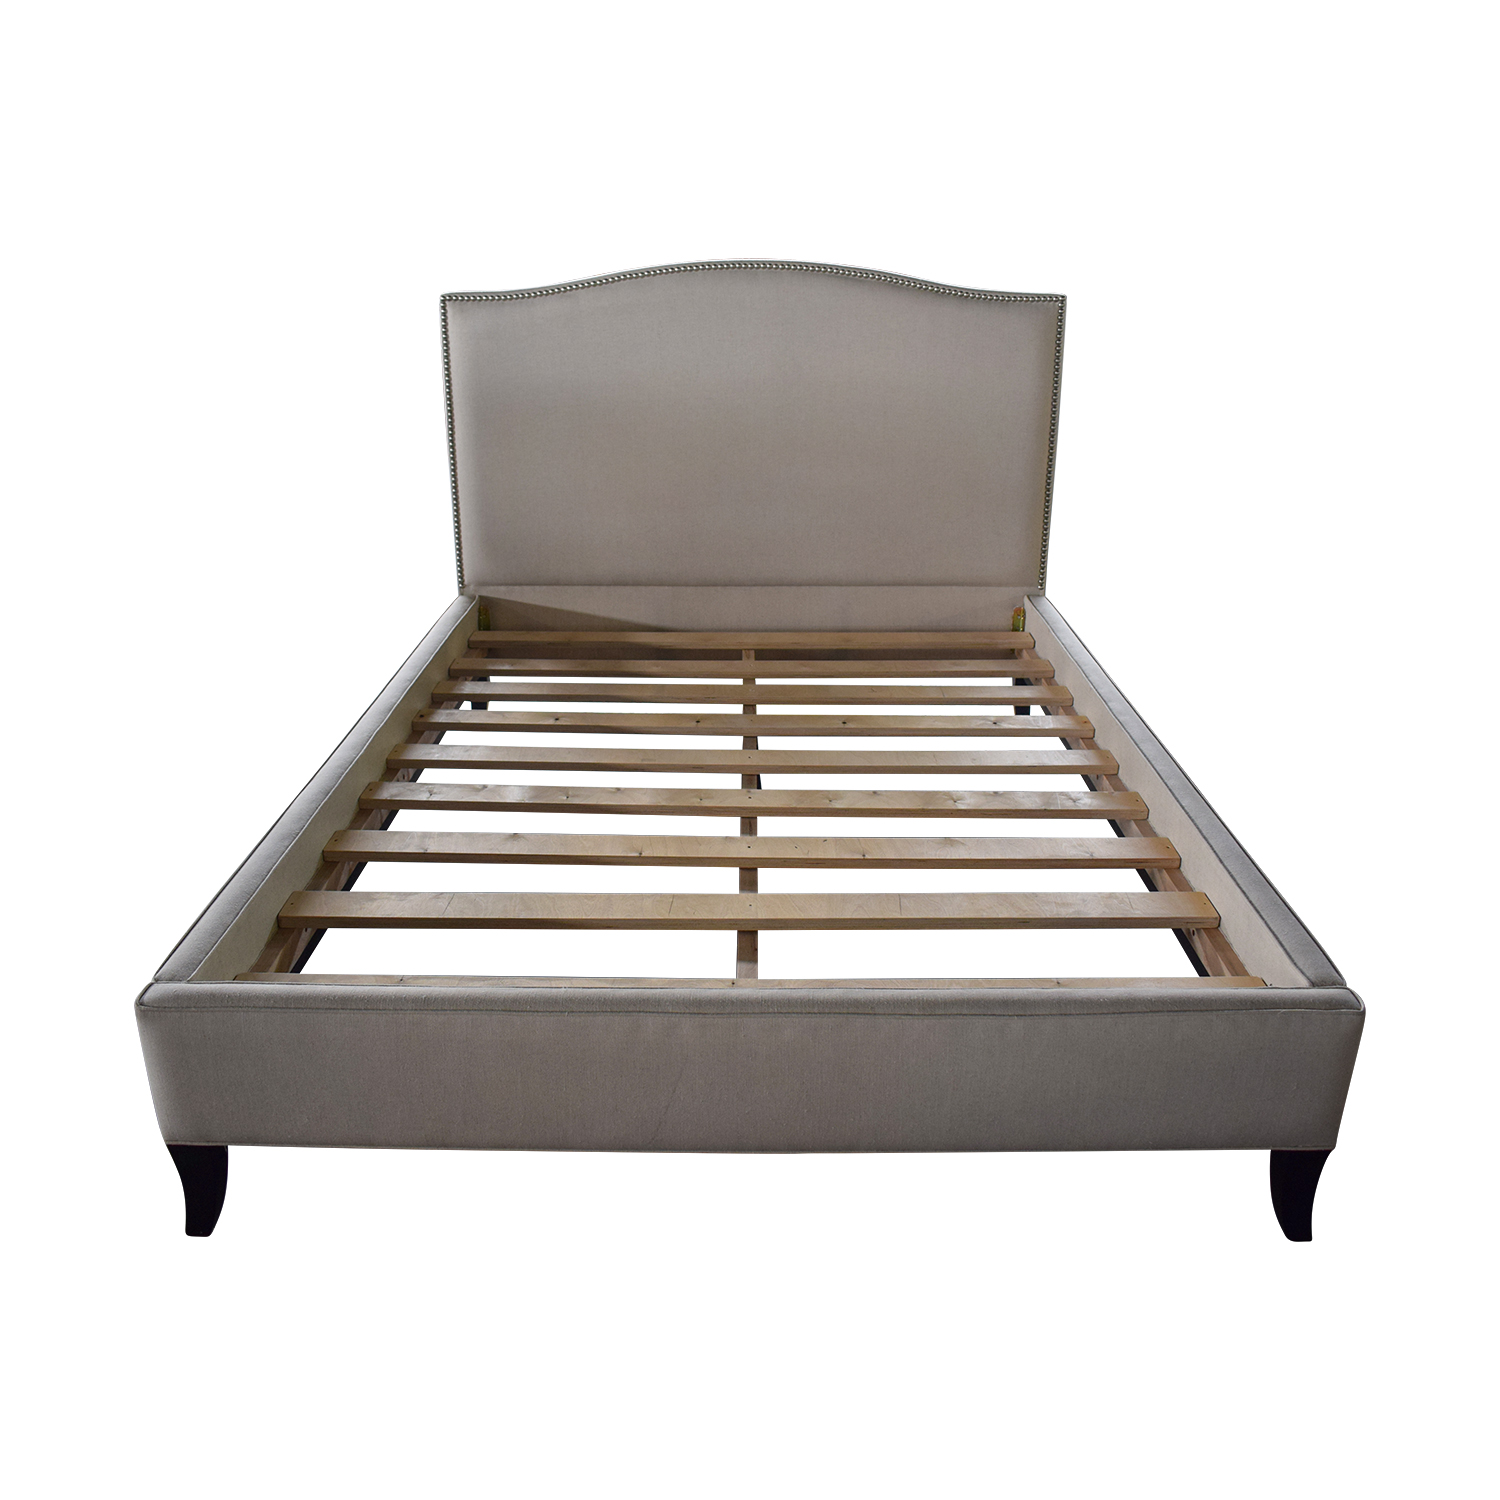 Crate & Barrel Colette II Beige Nailhead Queen Bed Frame sale